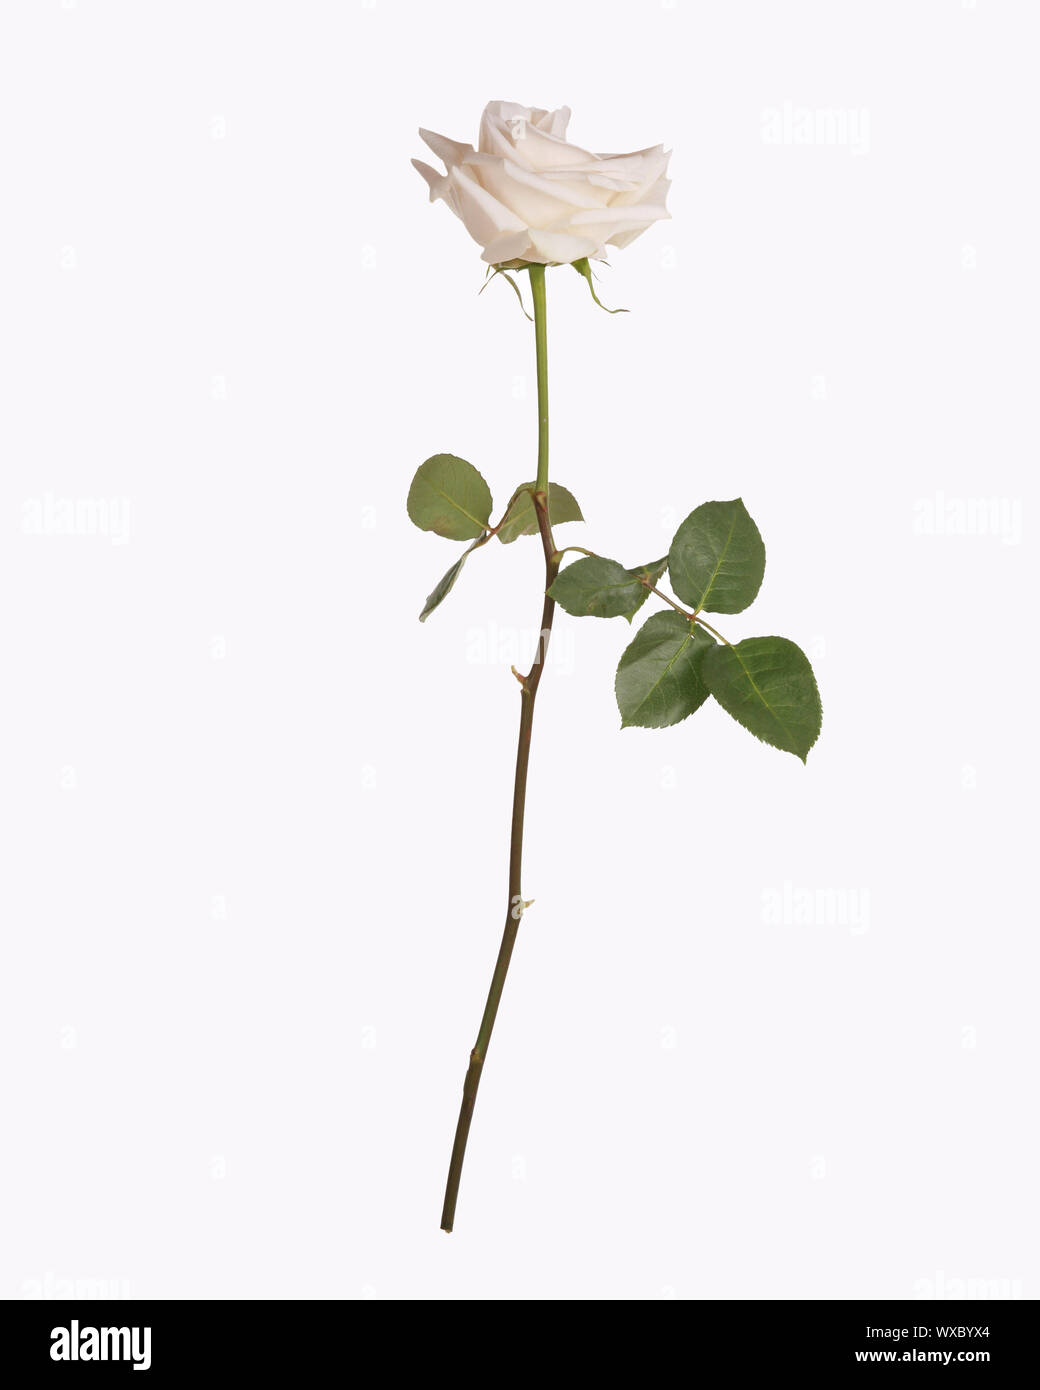 Single White Rose With Stem And Leaves Stock Photo Alamy